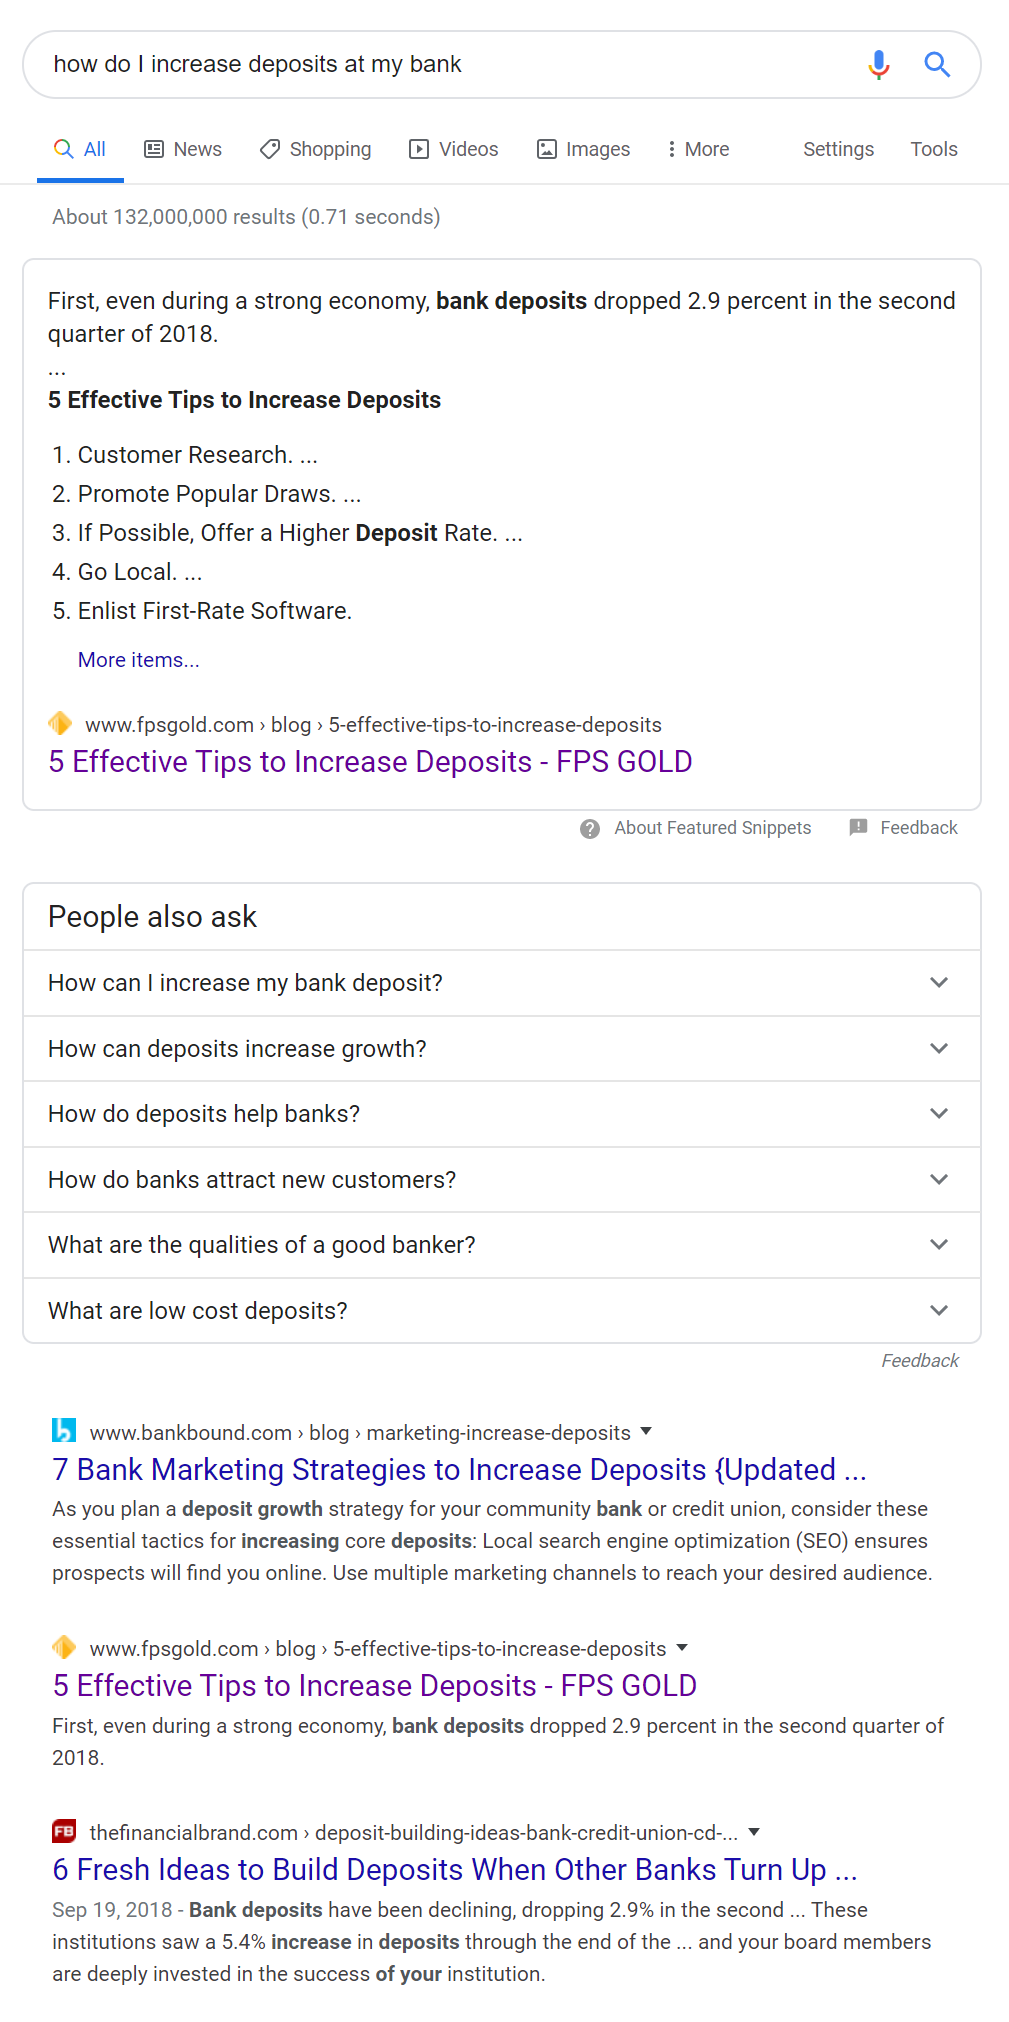 SERP for how do I increase deposits at my bank